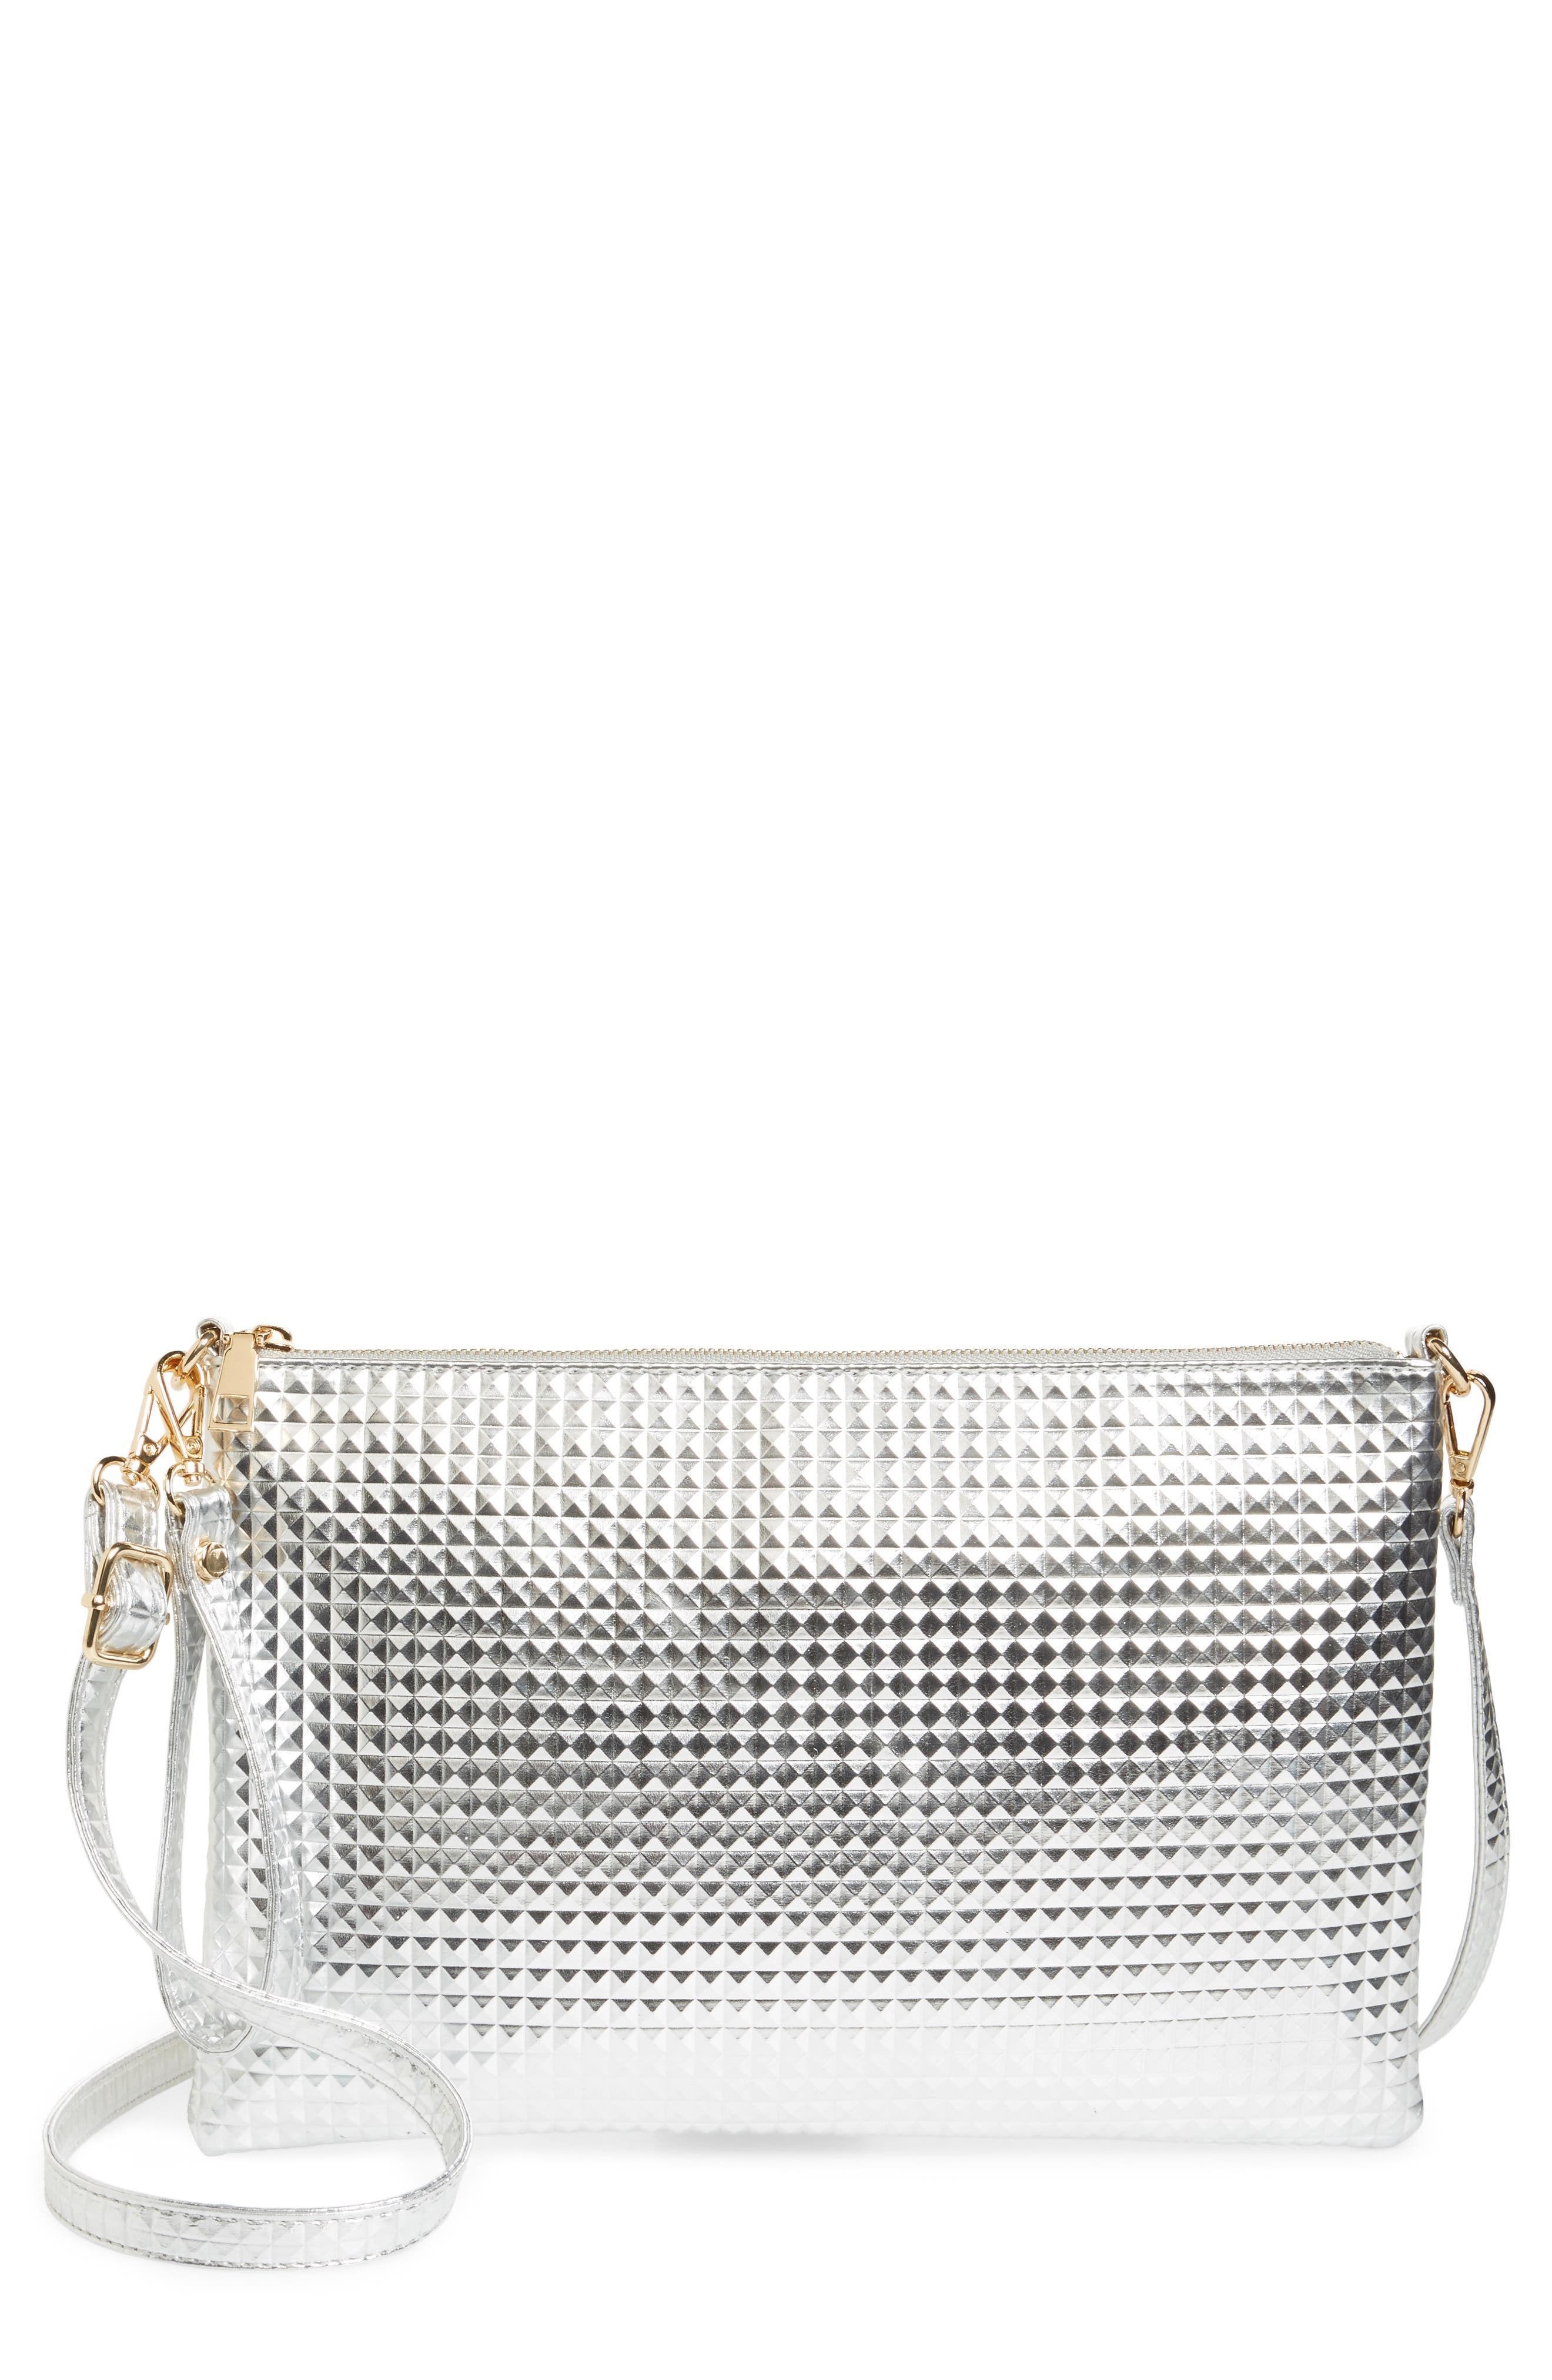 Alternate Image 1 Selected - Evelyn K Large Textured Metallic Faux Leather Pouch